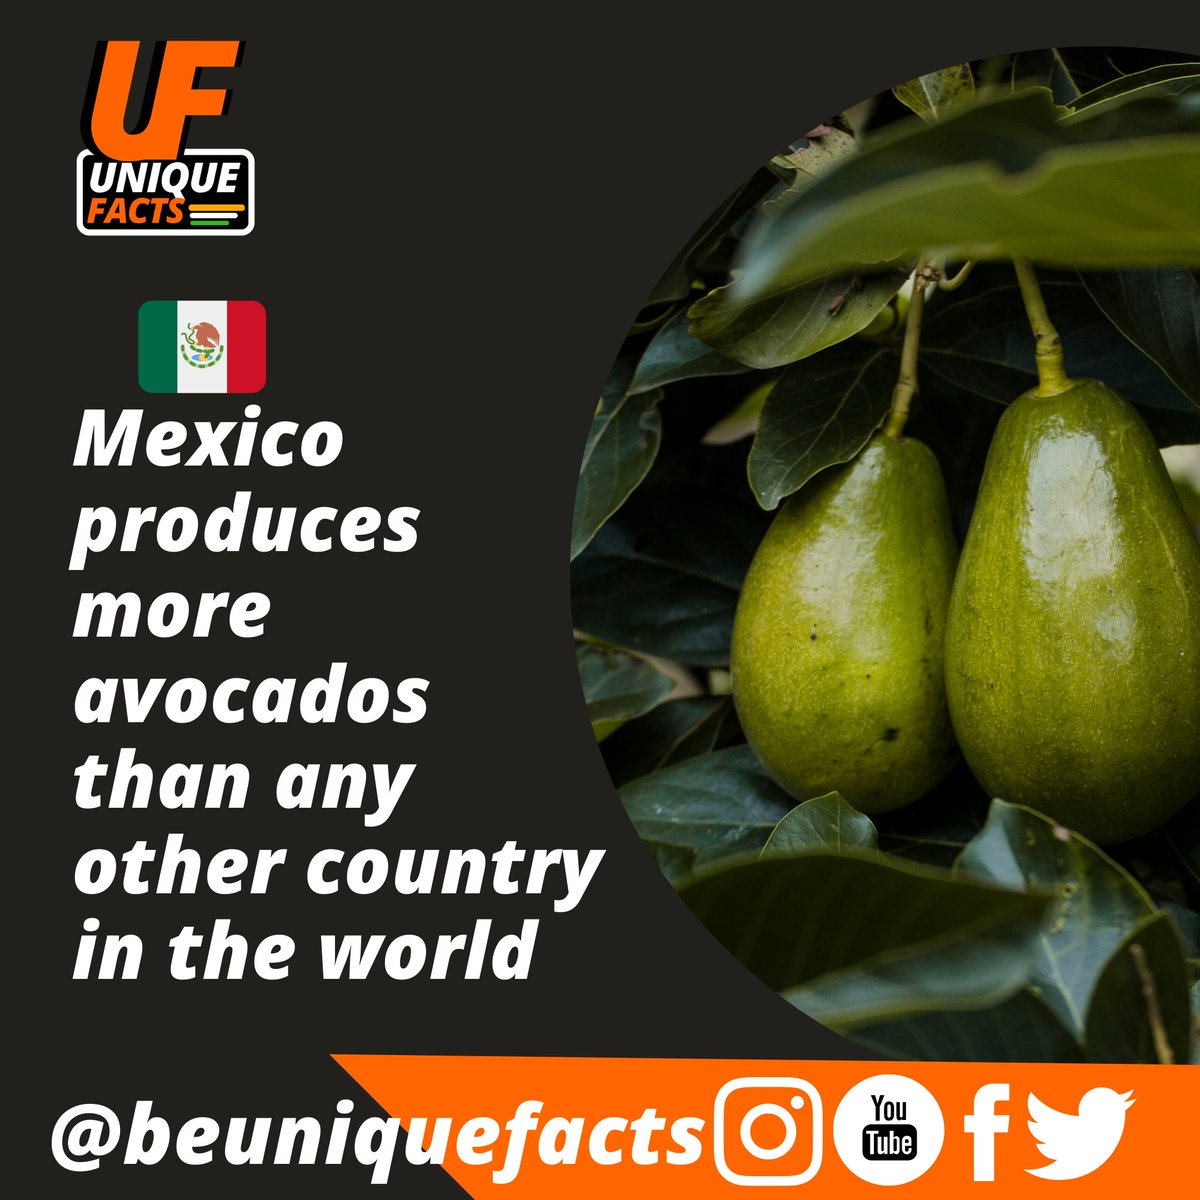 . Follow us to get daily amazing & unique facts @beuniquefacts . #avocado #avocadotoast #mexico #méxico #world #mexicanfood #worldfacts #Palestine #beuniquefacts #uniquefacts #coronavirus #fridaymorning #MaharashtraBachao #Israel #ಕನ್ನಡದಲ್ಲಿ_ಮಾಹಿತಿಕೊಡಿ  #followmepic.twitter.com/AcNudNtFzY